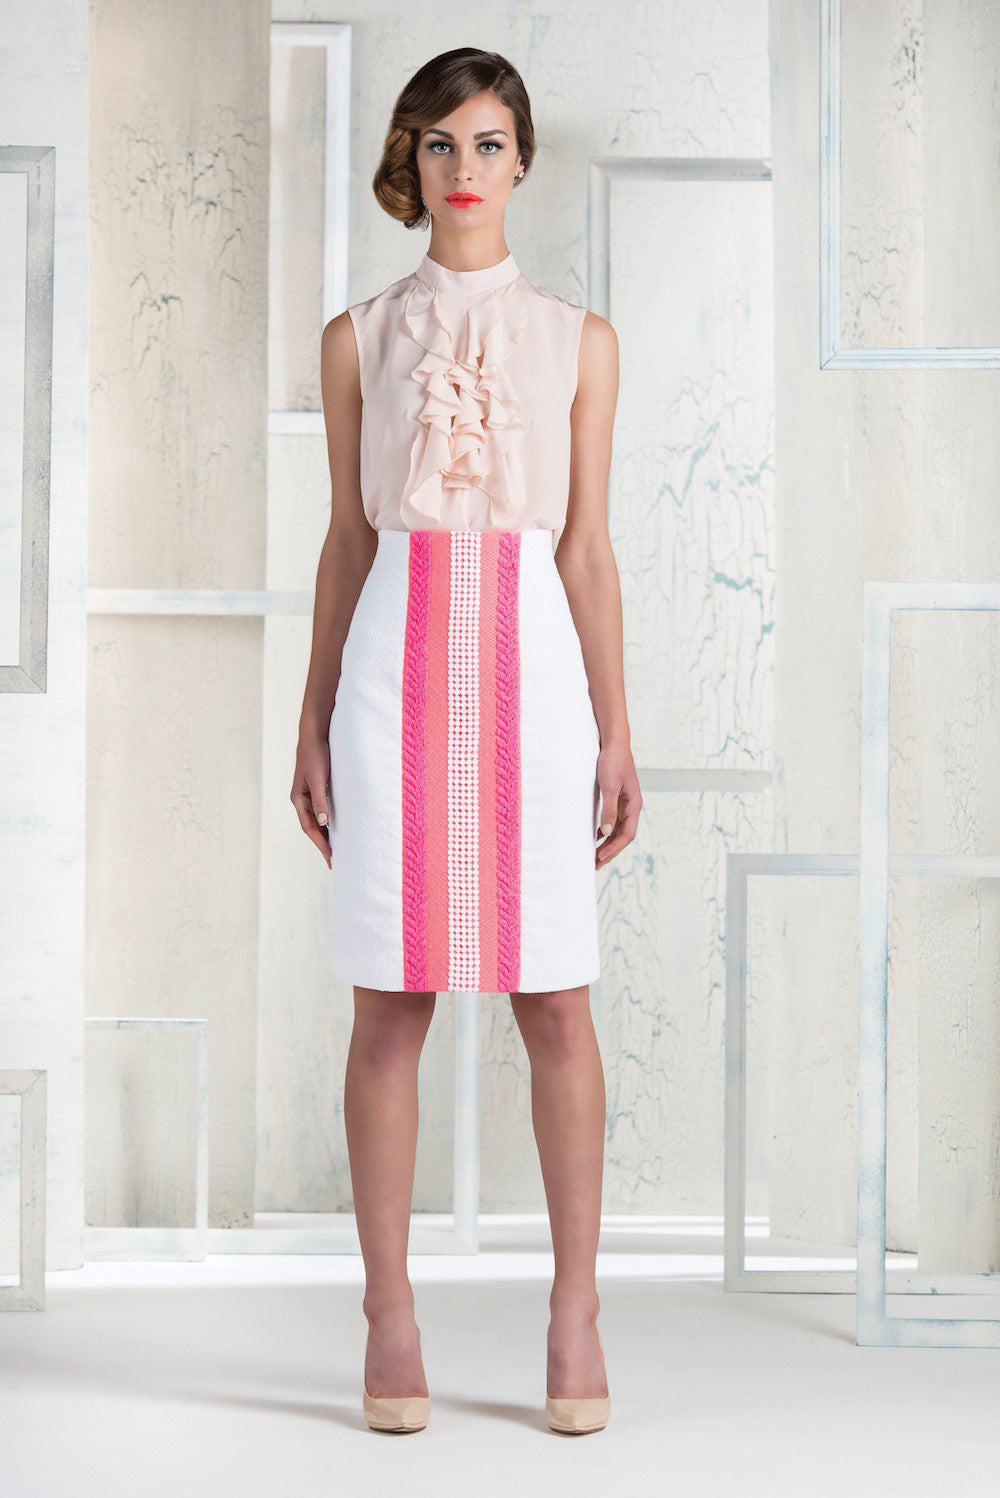 Celine Skirt - Pink - Womenswear Outlet - Madderson London